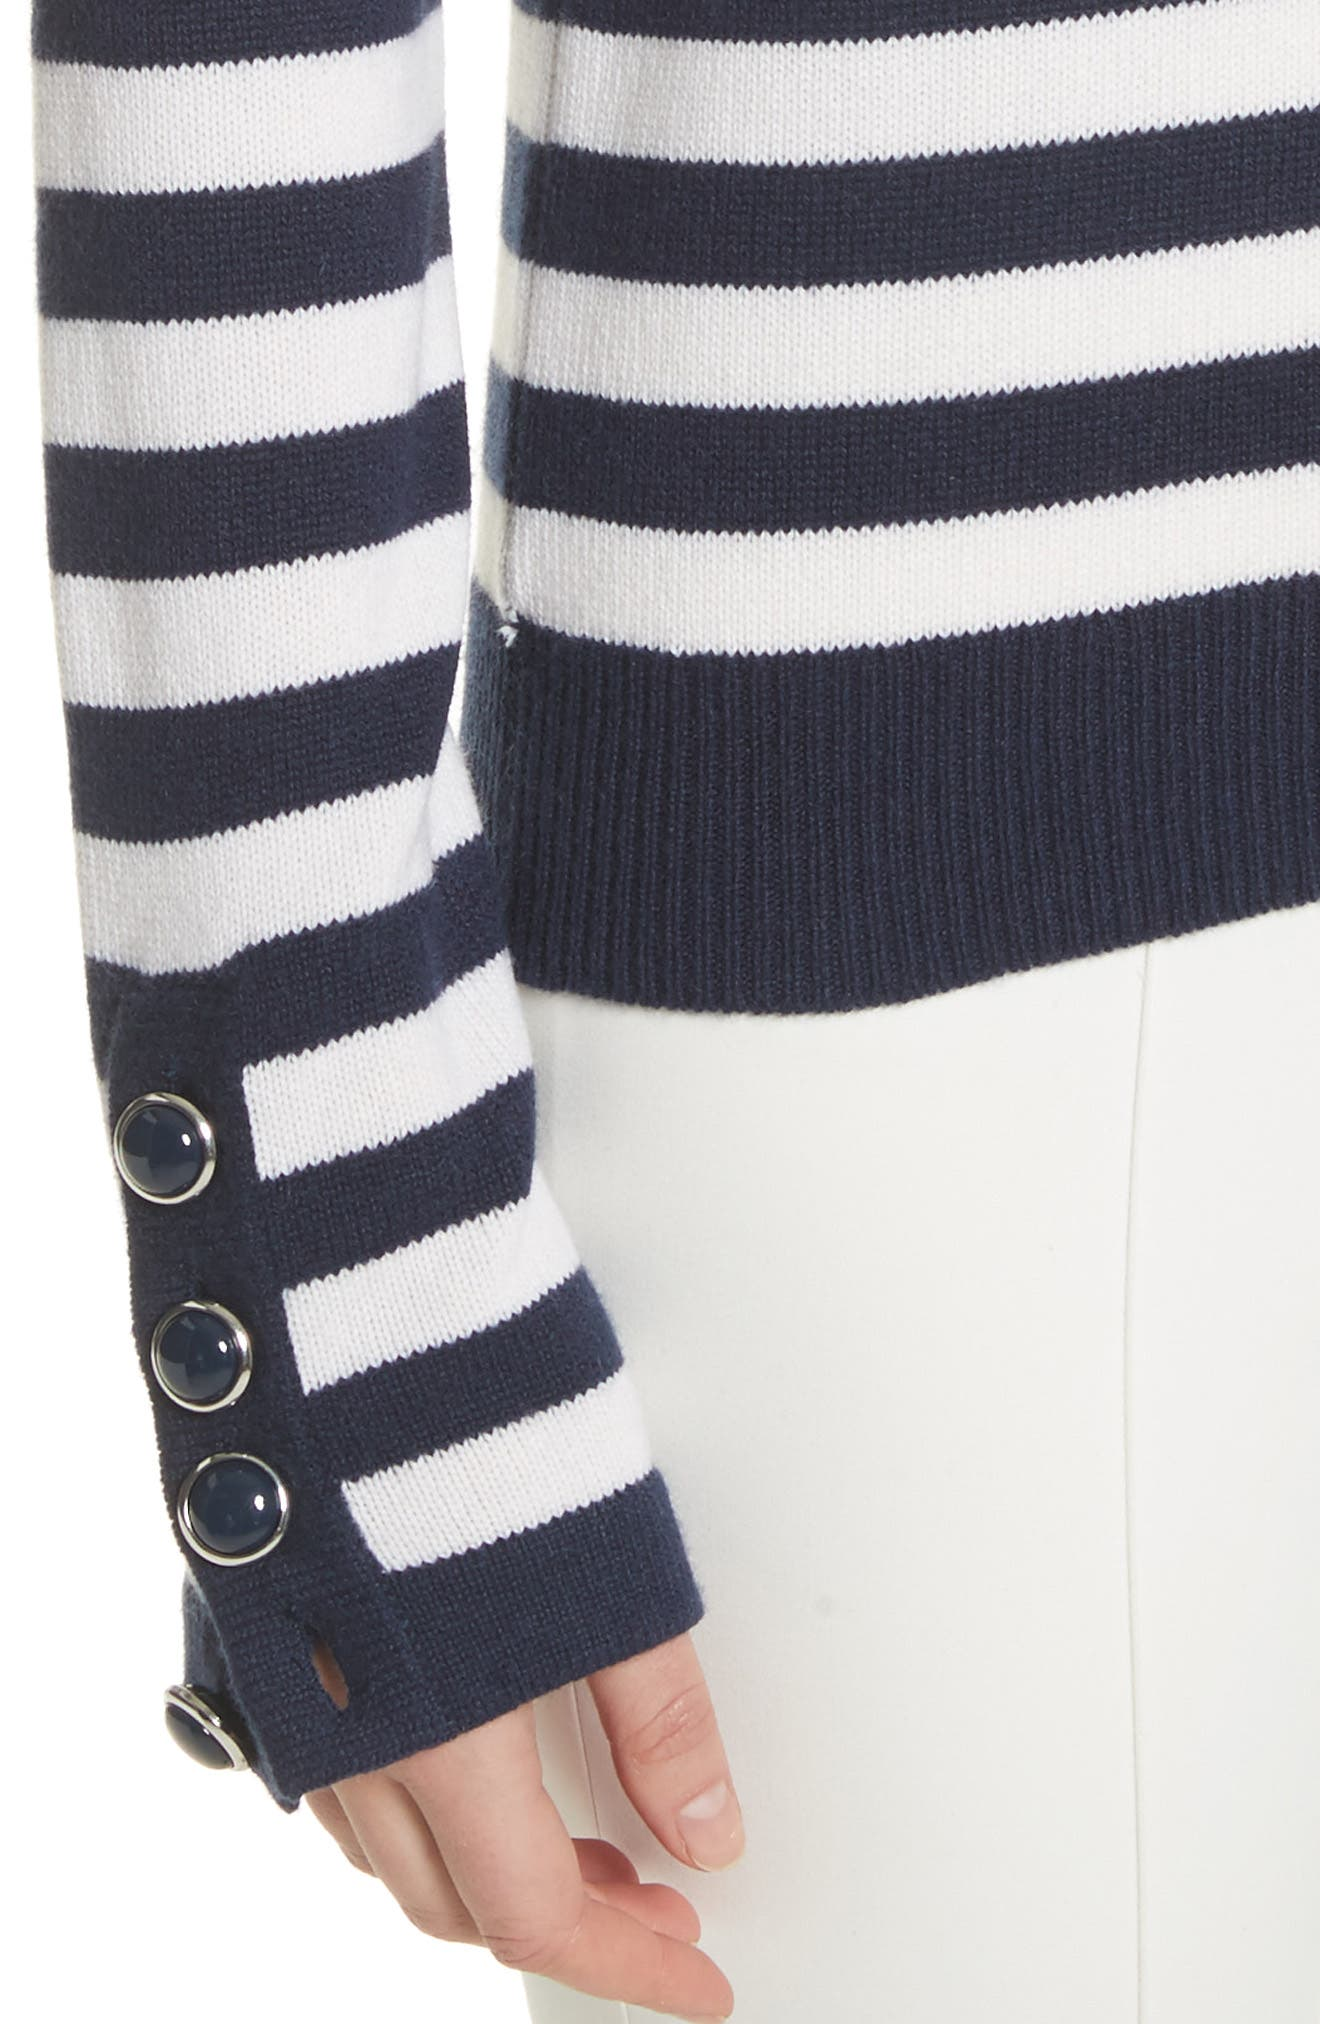 Button Cuff Cashmere Sweater,                             Alternate thumbnail 4, color,                             478